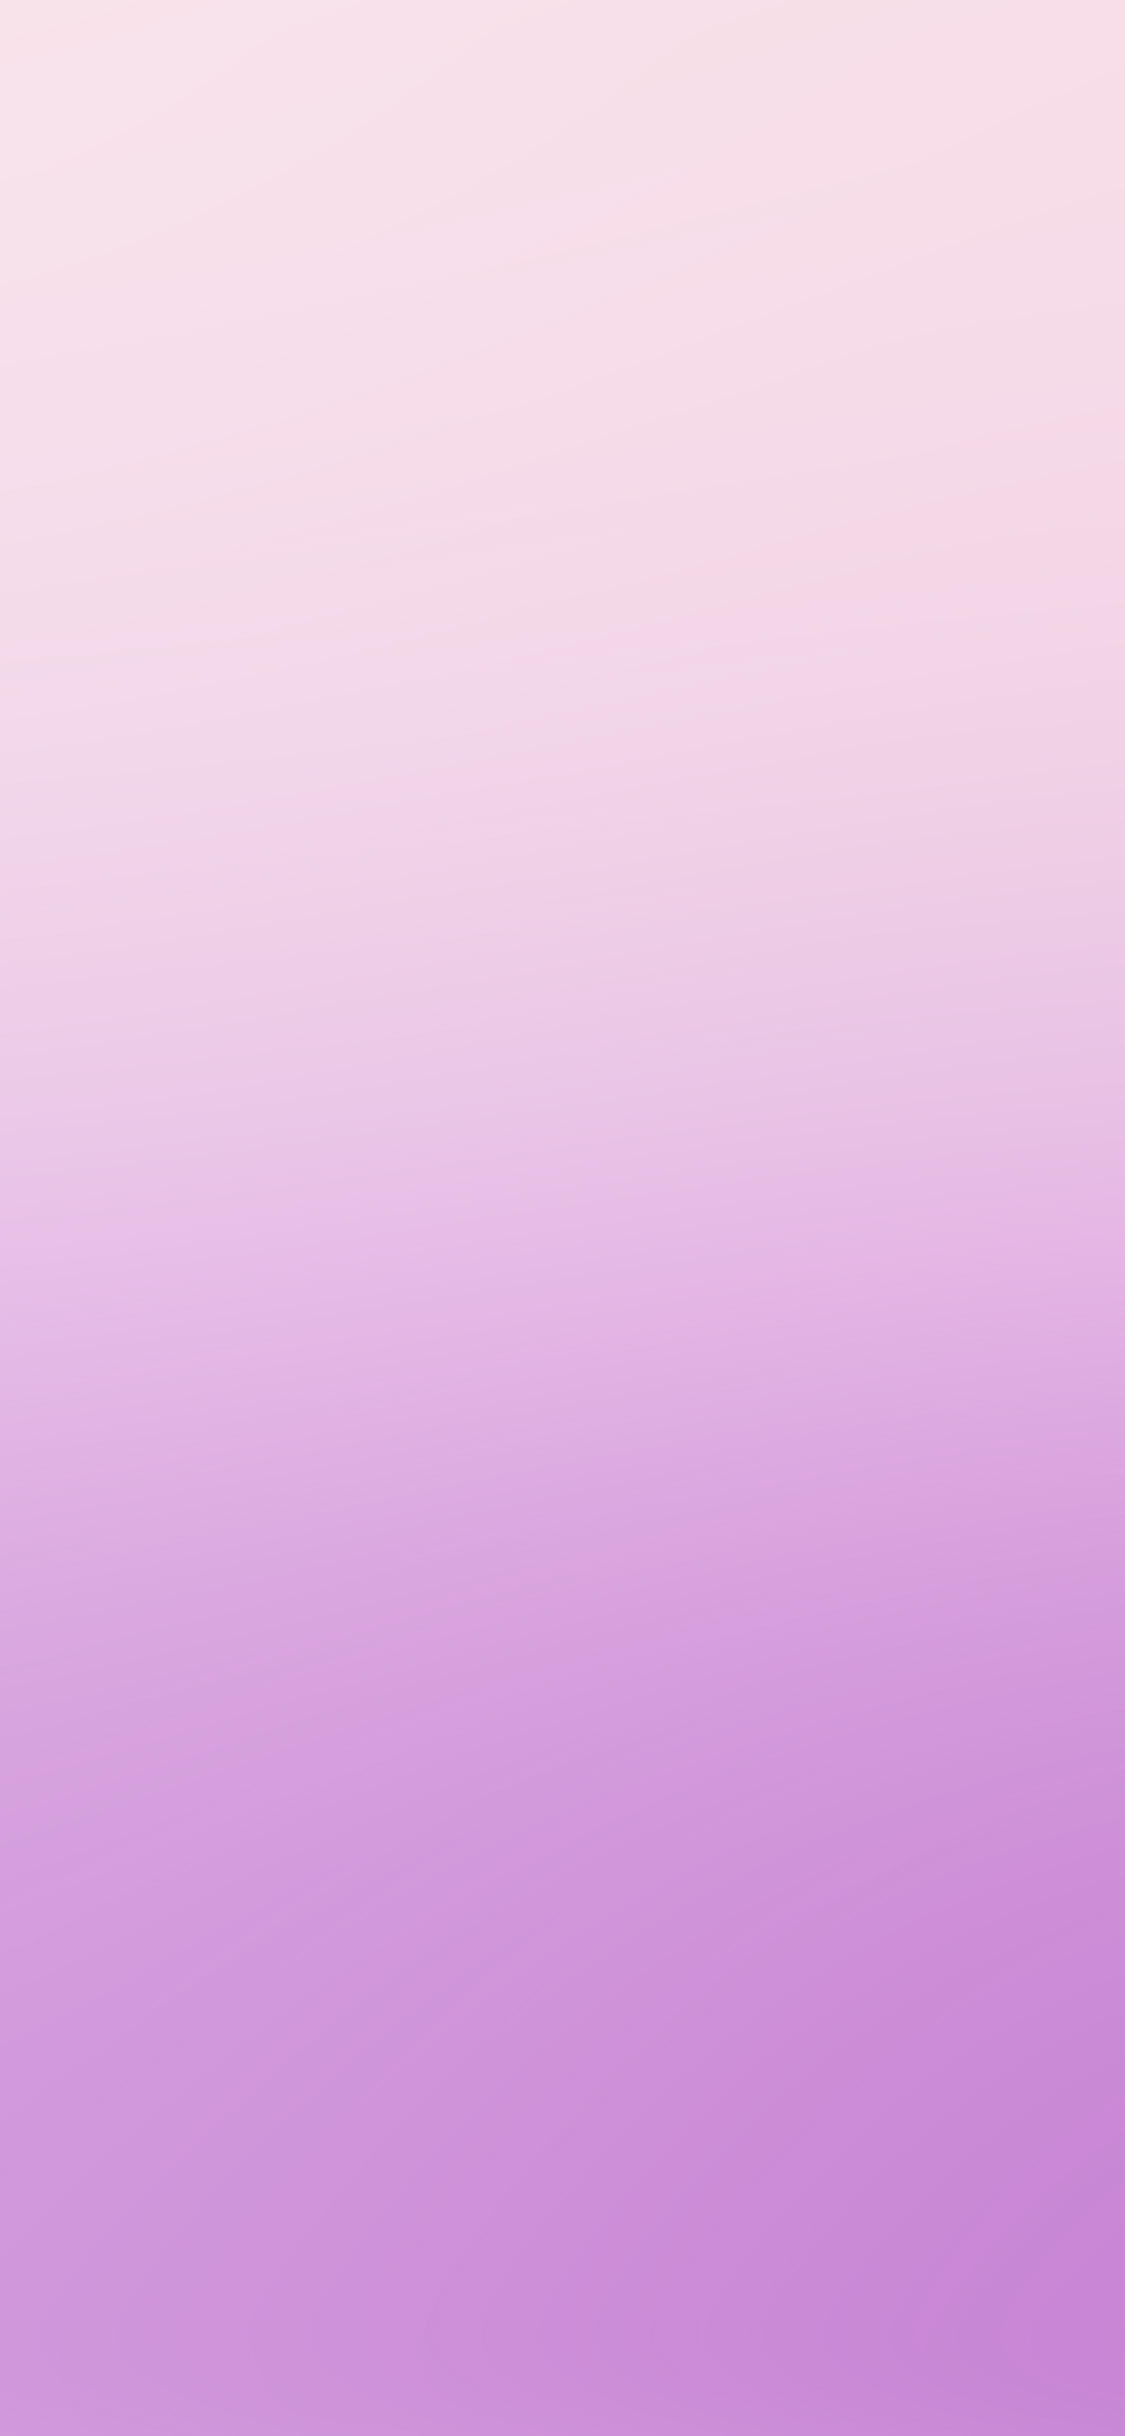 Mini Car Hd Wallpaper Sl95 Soft Pastel Violet Blur Gradation Wallpaper